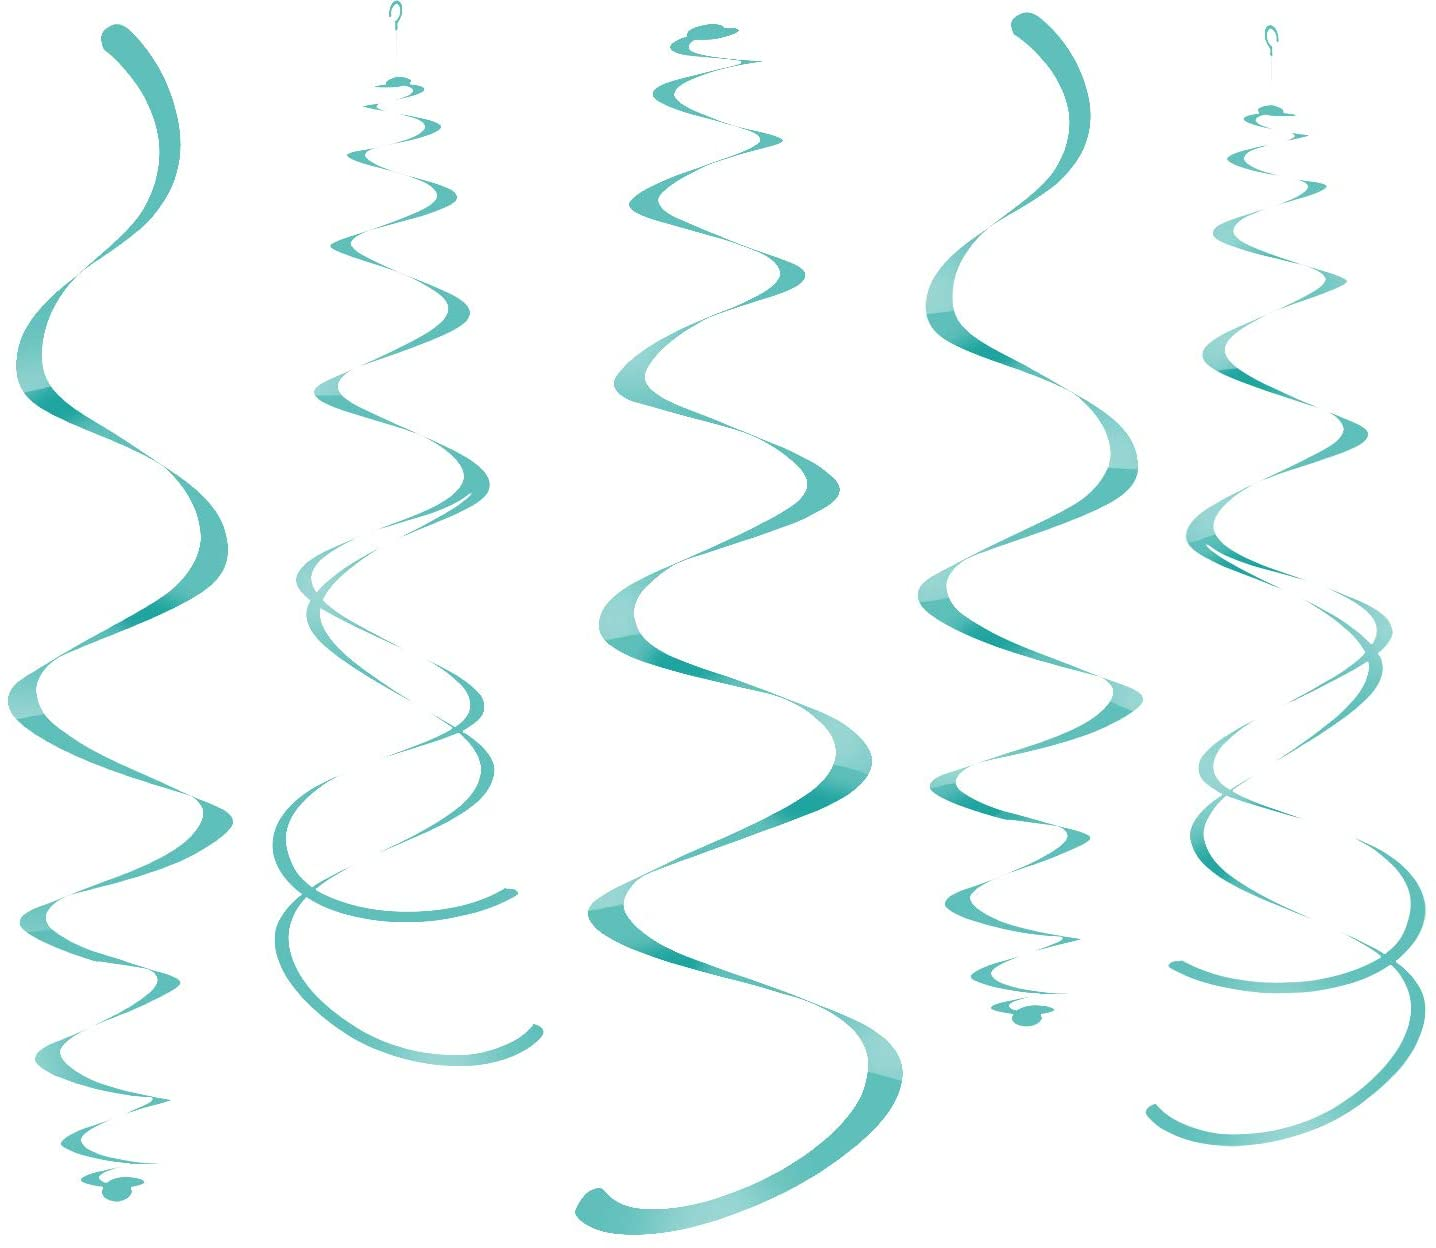 WEVEN Teal Party Hanging Swirl Decorations Plastic Streamer for Ceiling, Pack of 28